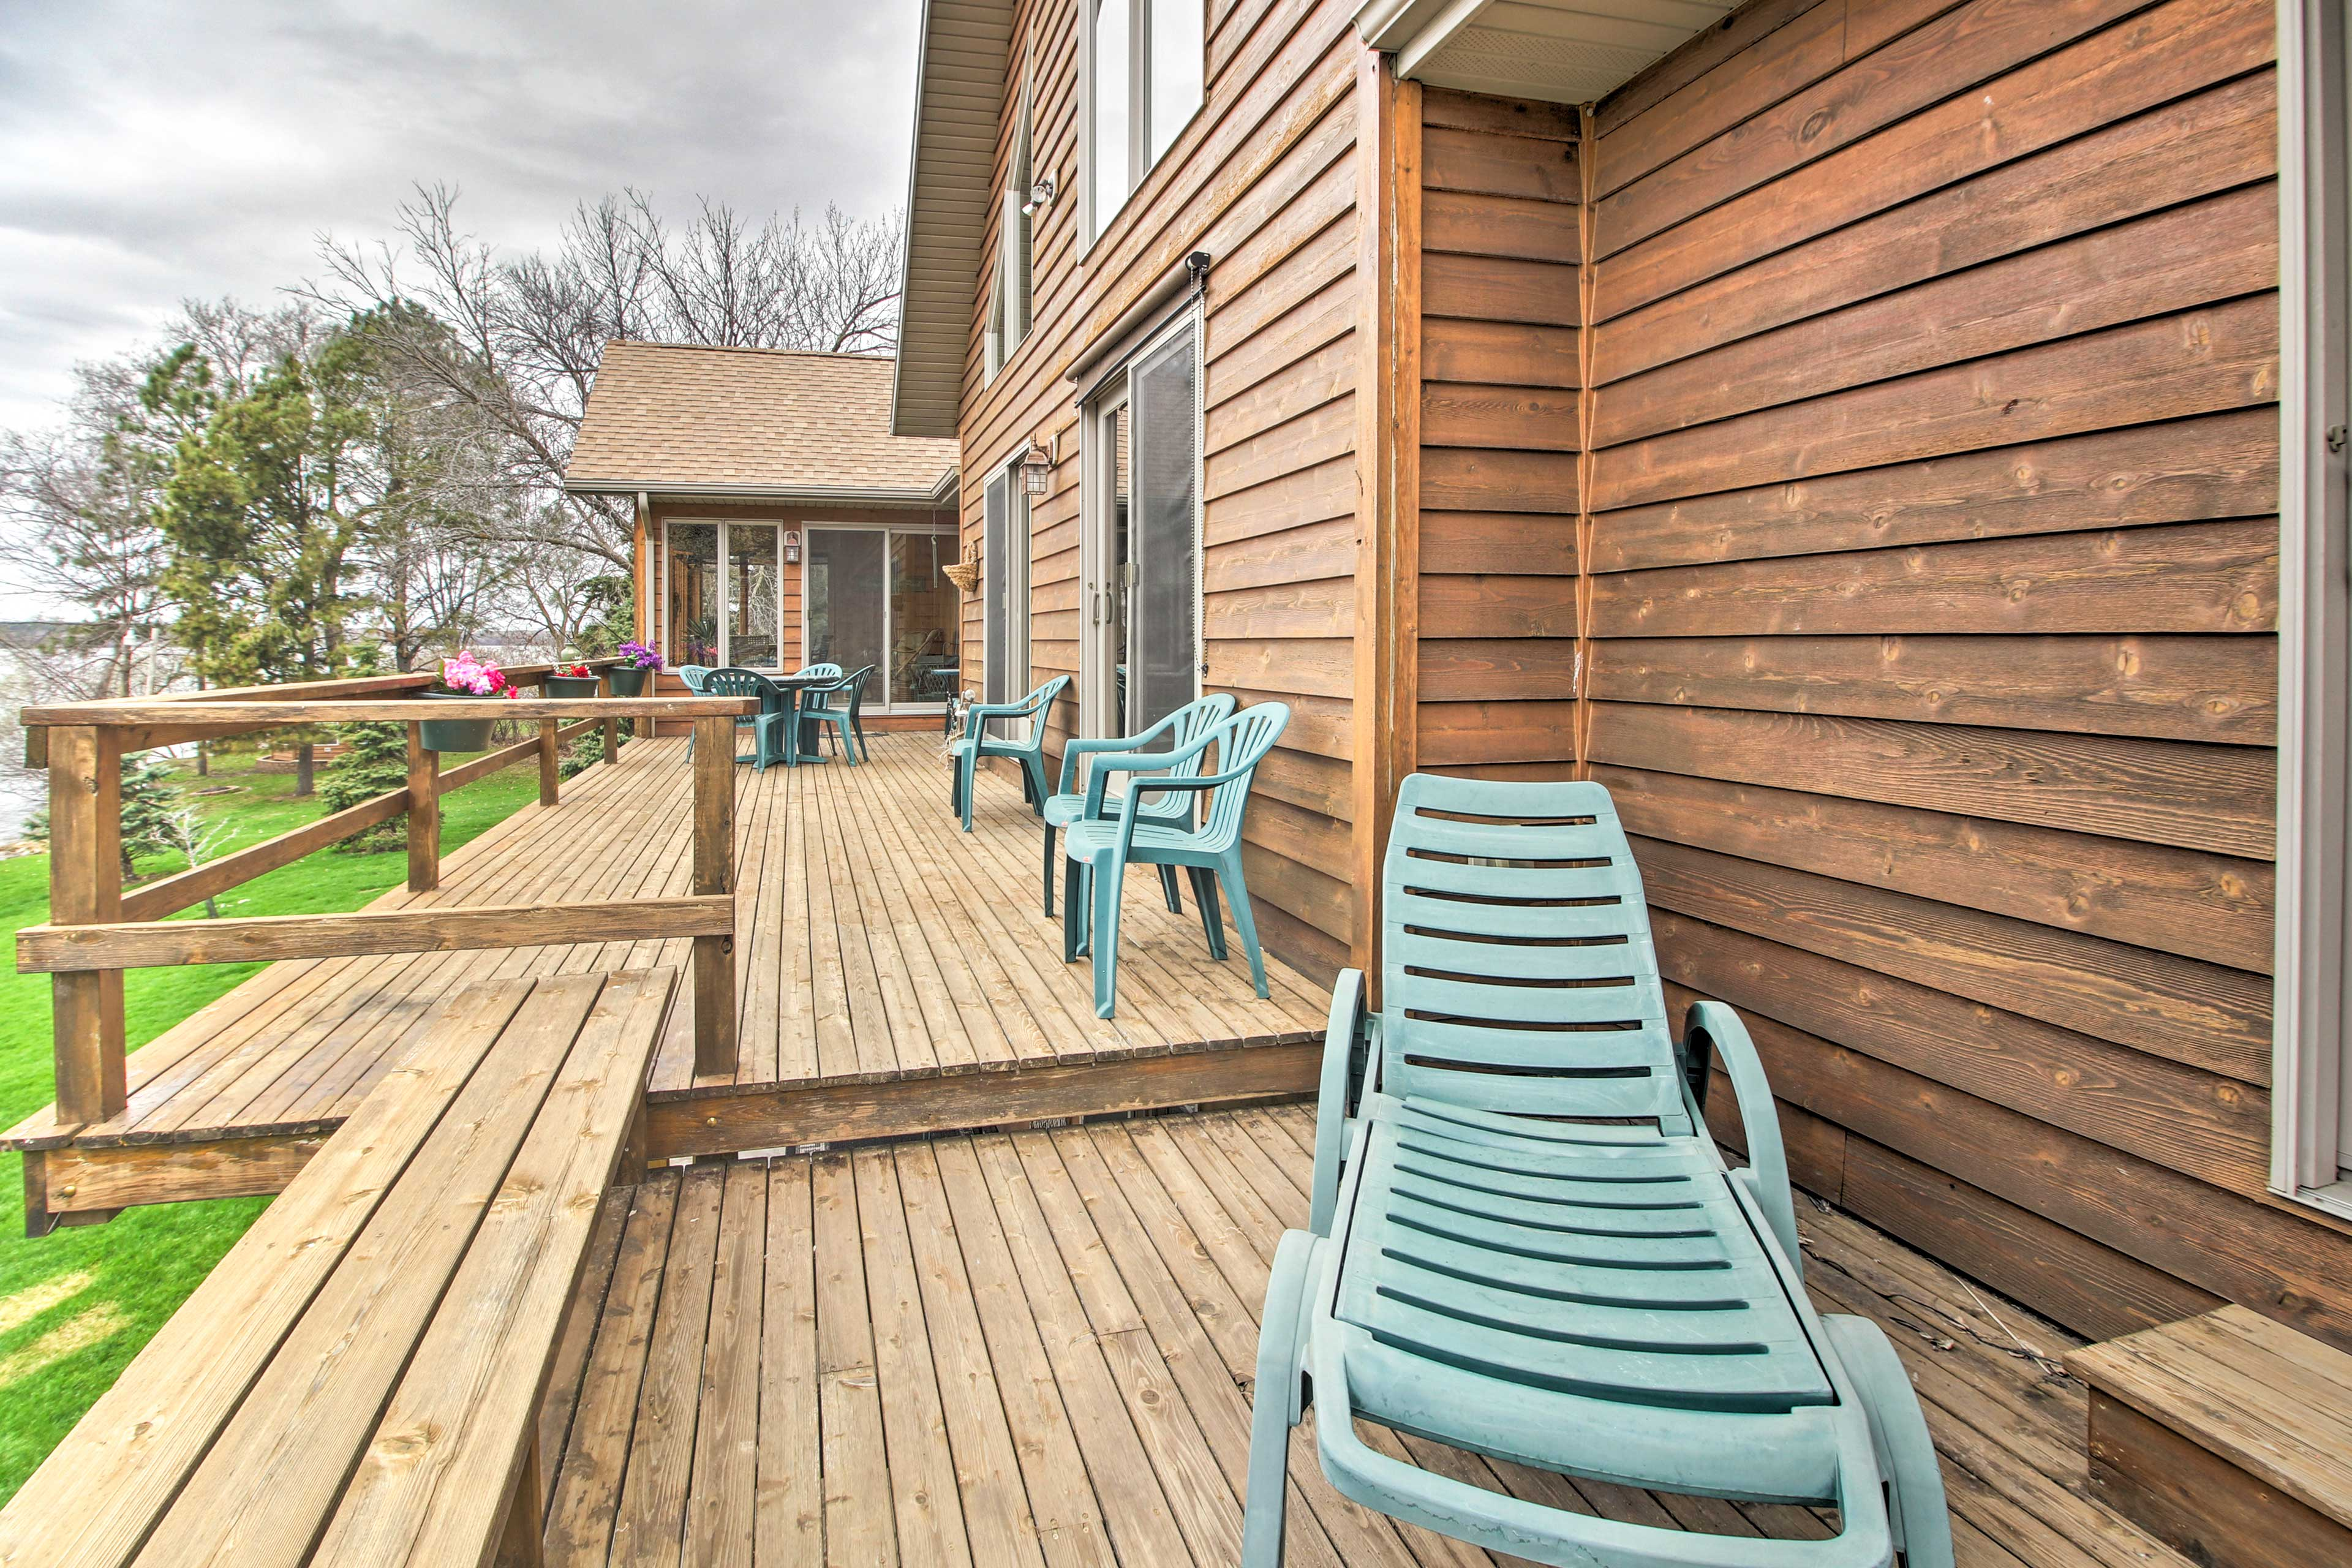 The furnished deck features a chaise lounge and seating for the whole group!